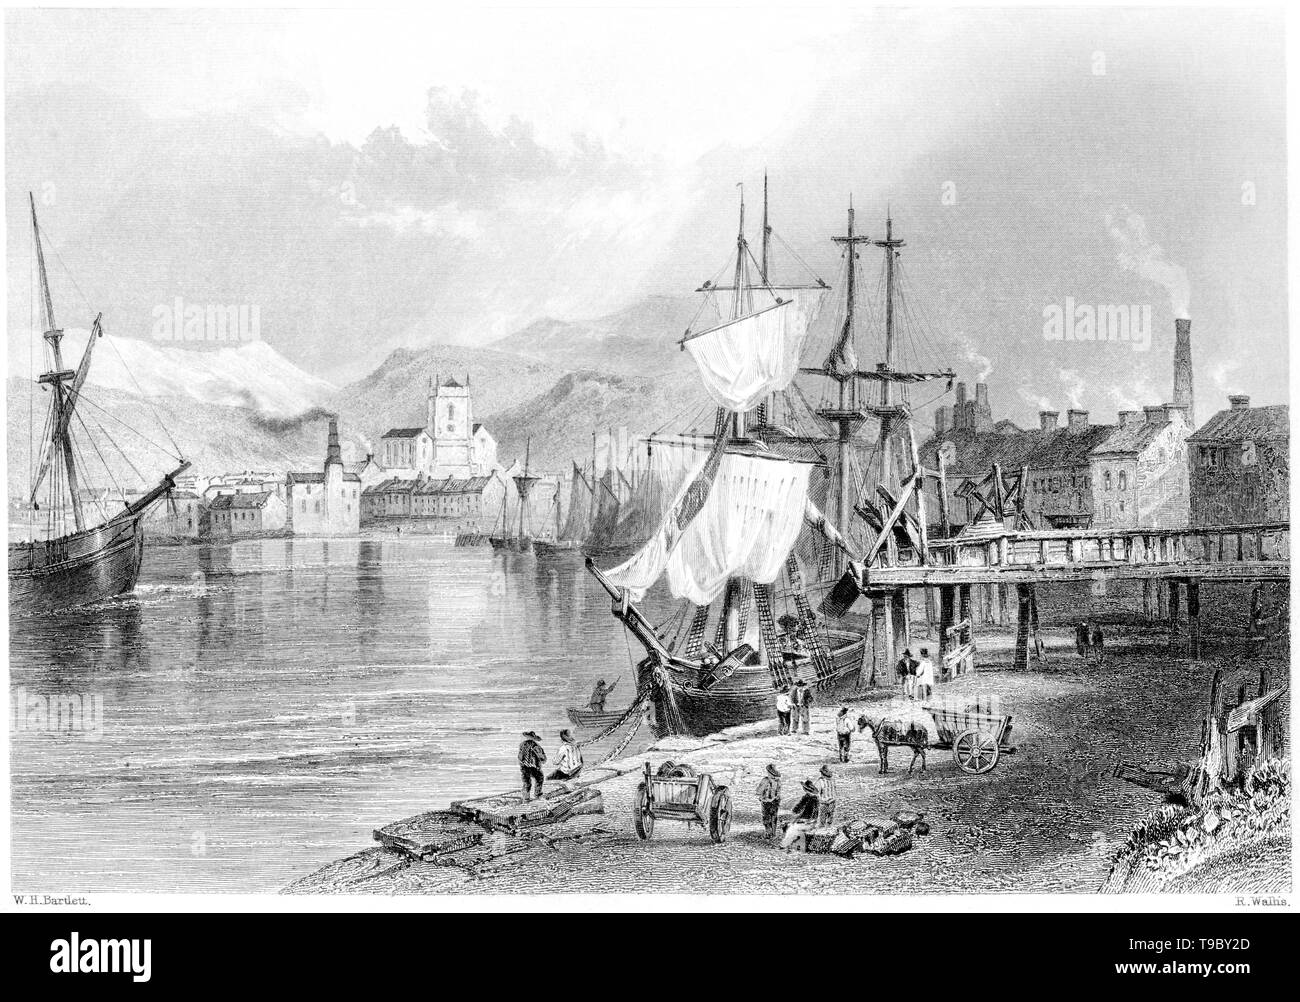 An engraving of Workington, Cumberland scanned at high resolution from a book published in 1842.  Believed copyright free. Stock Photo